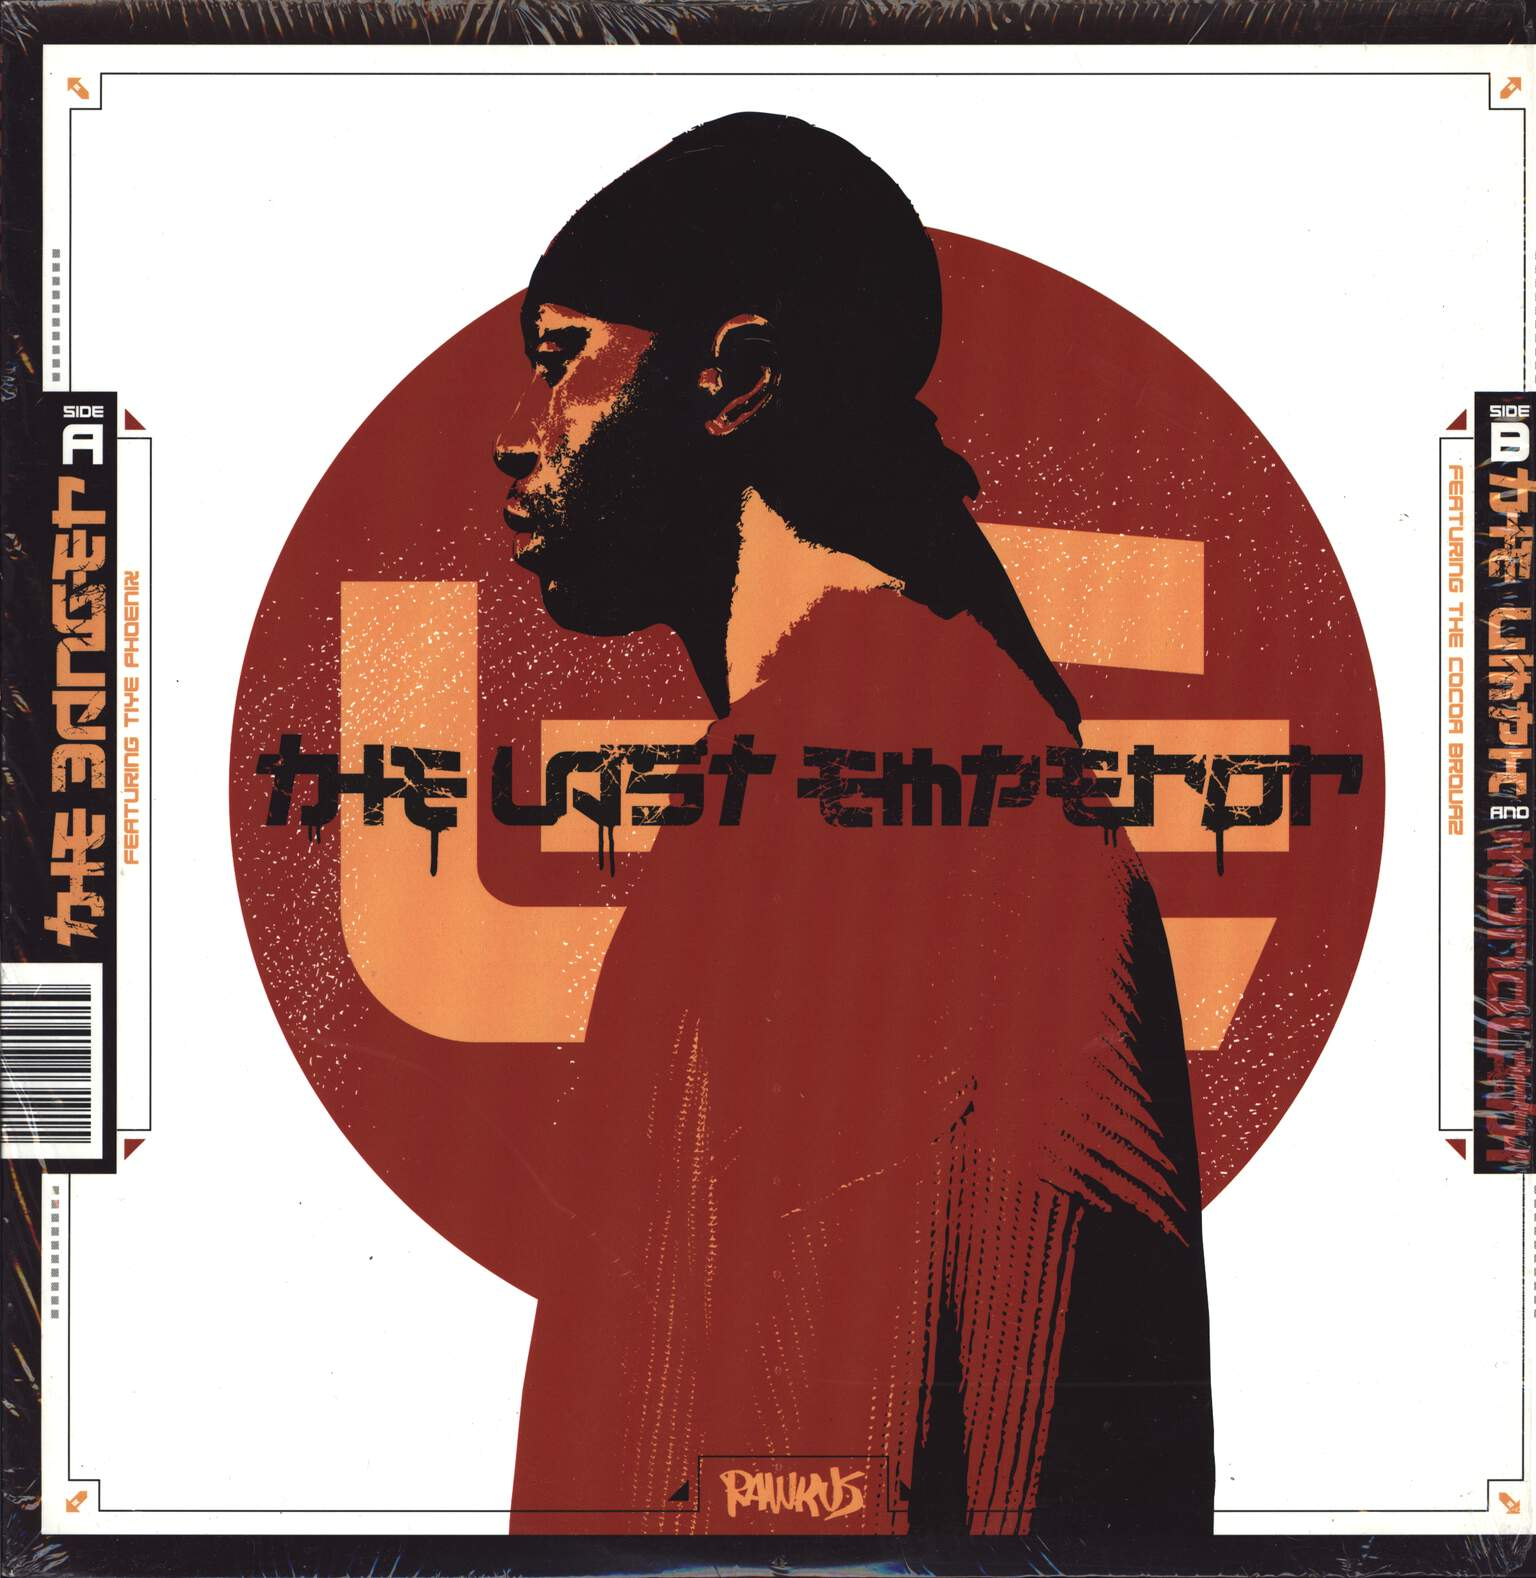 "The Last Emperor: The Banger / The Umph, 12"" Maxi Single (Vinyl)"